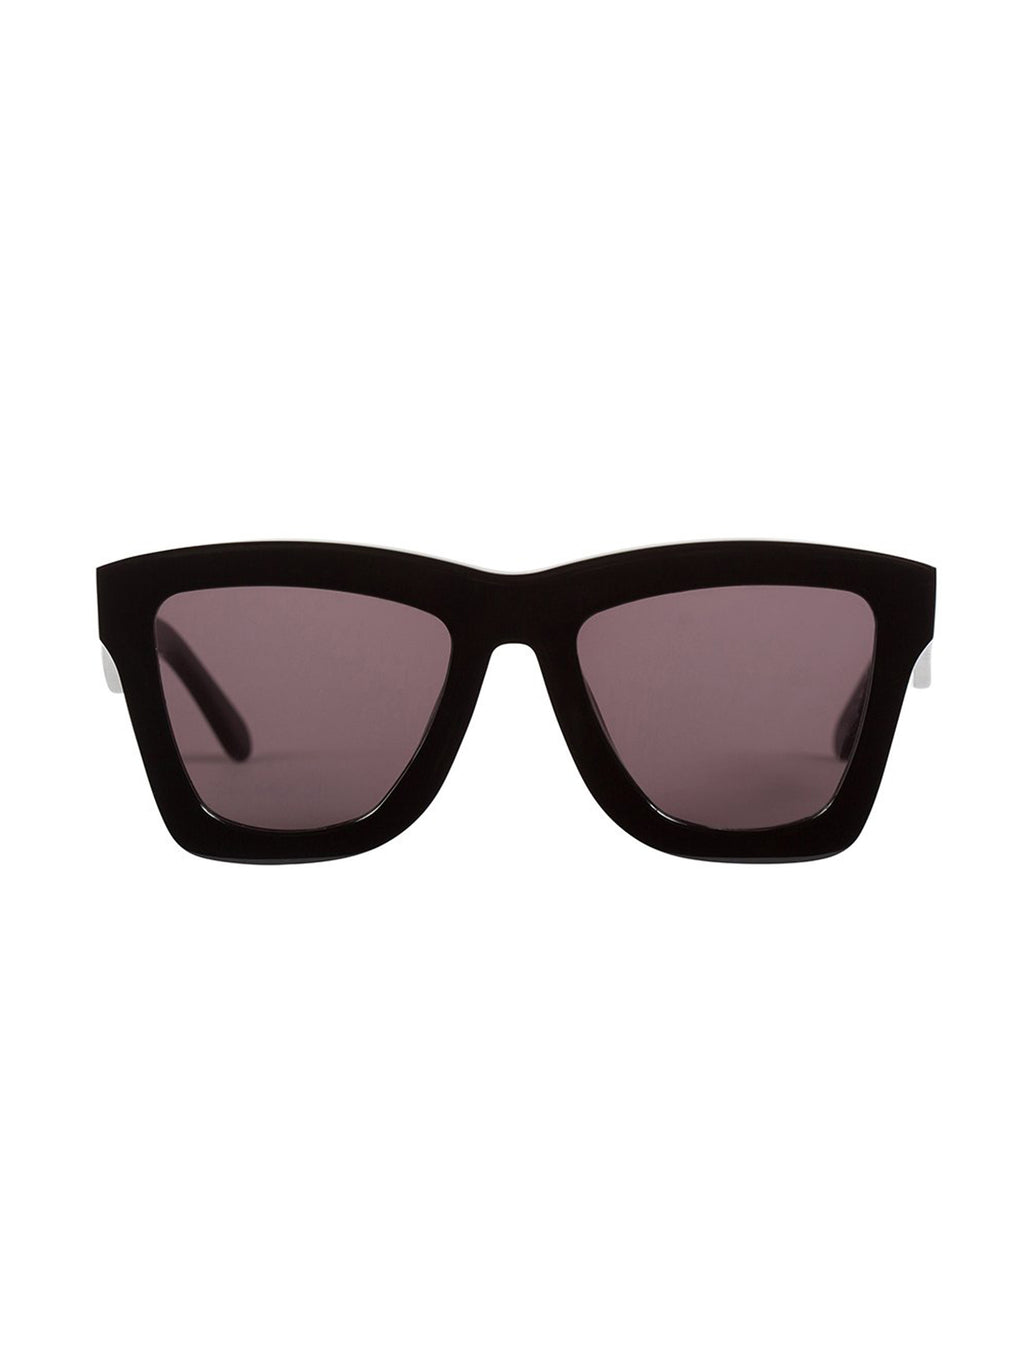 VALLEY EYEWEAR DB II ZERO | Gloss Black / Black Lens